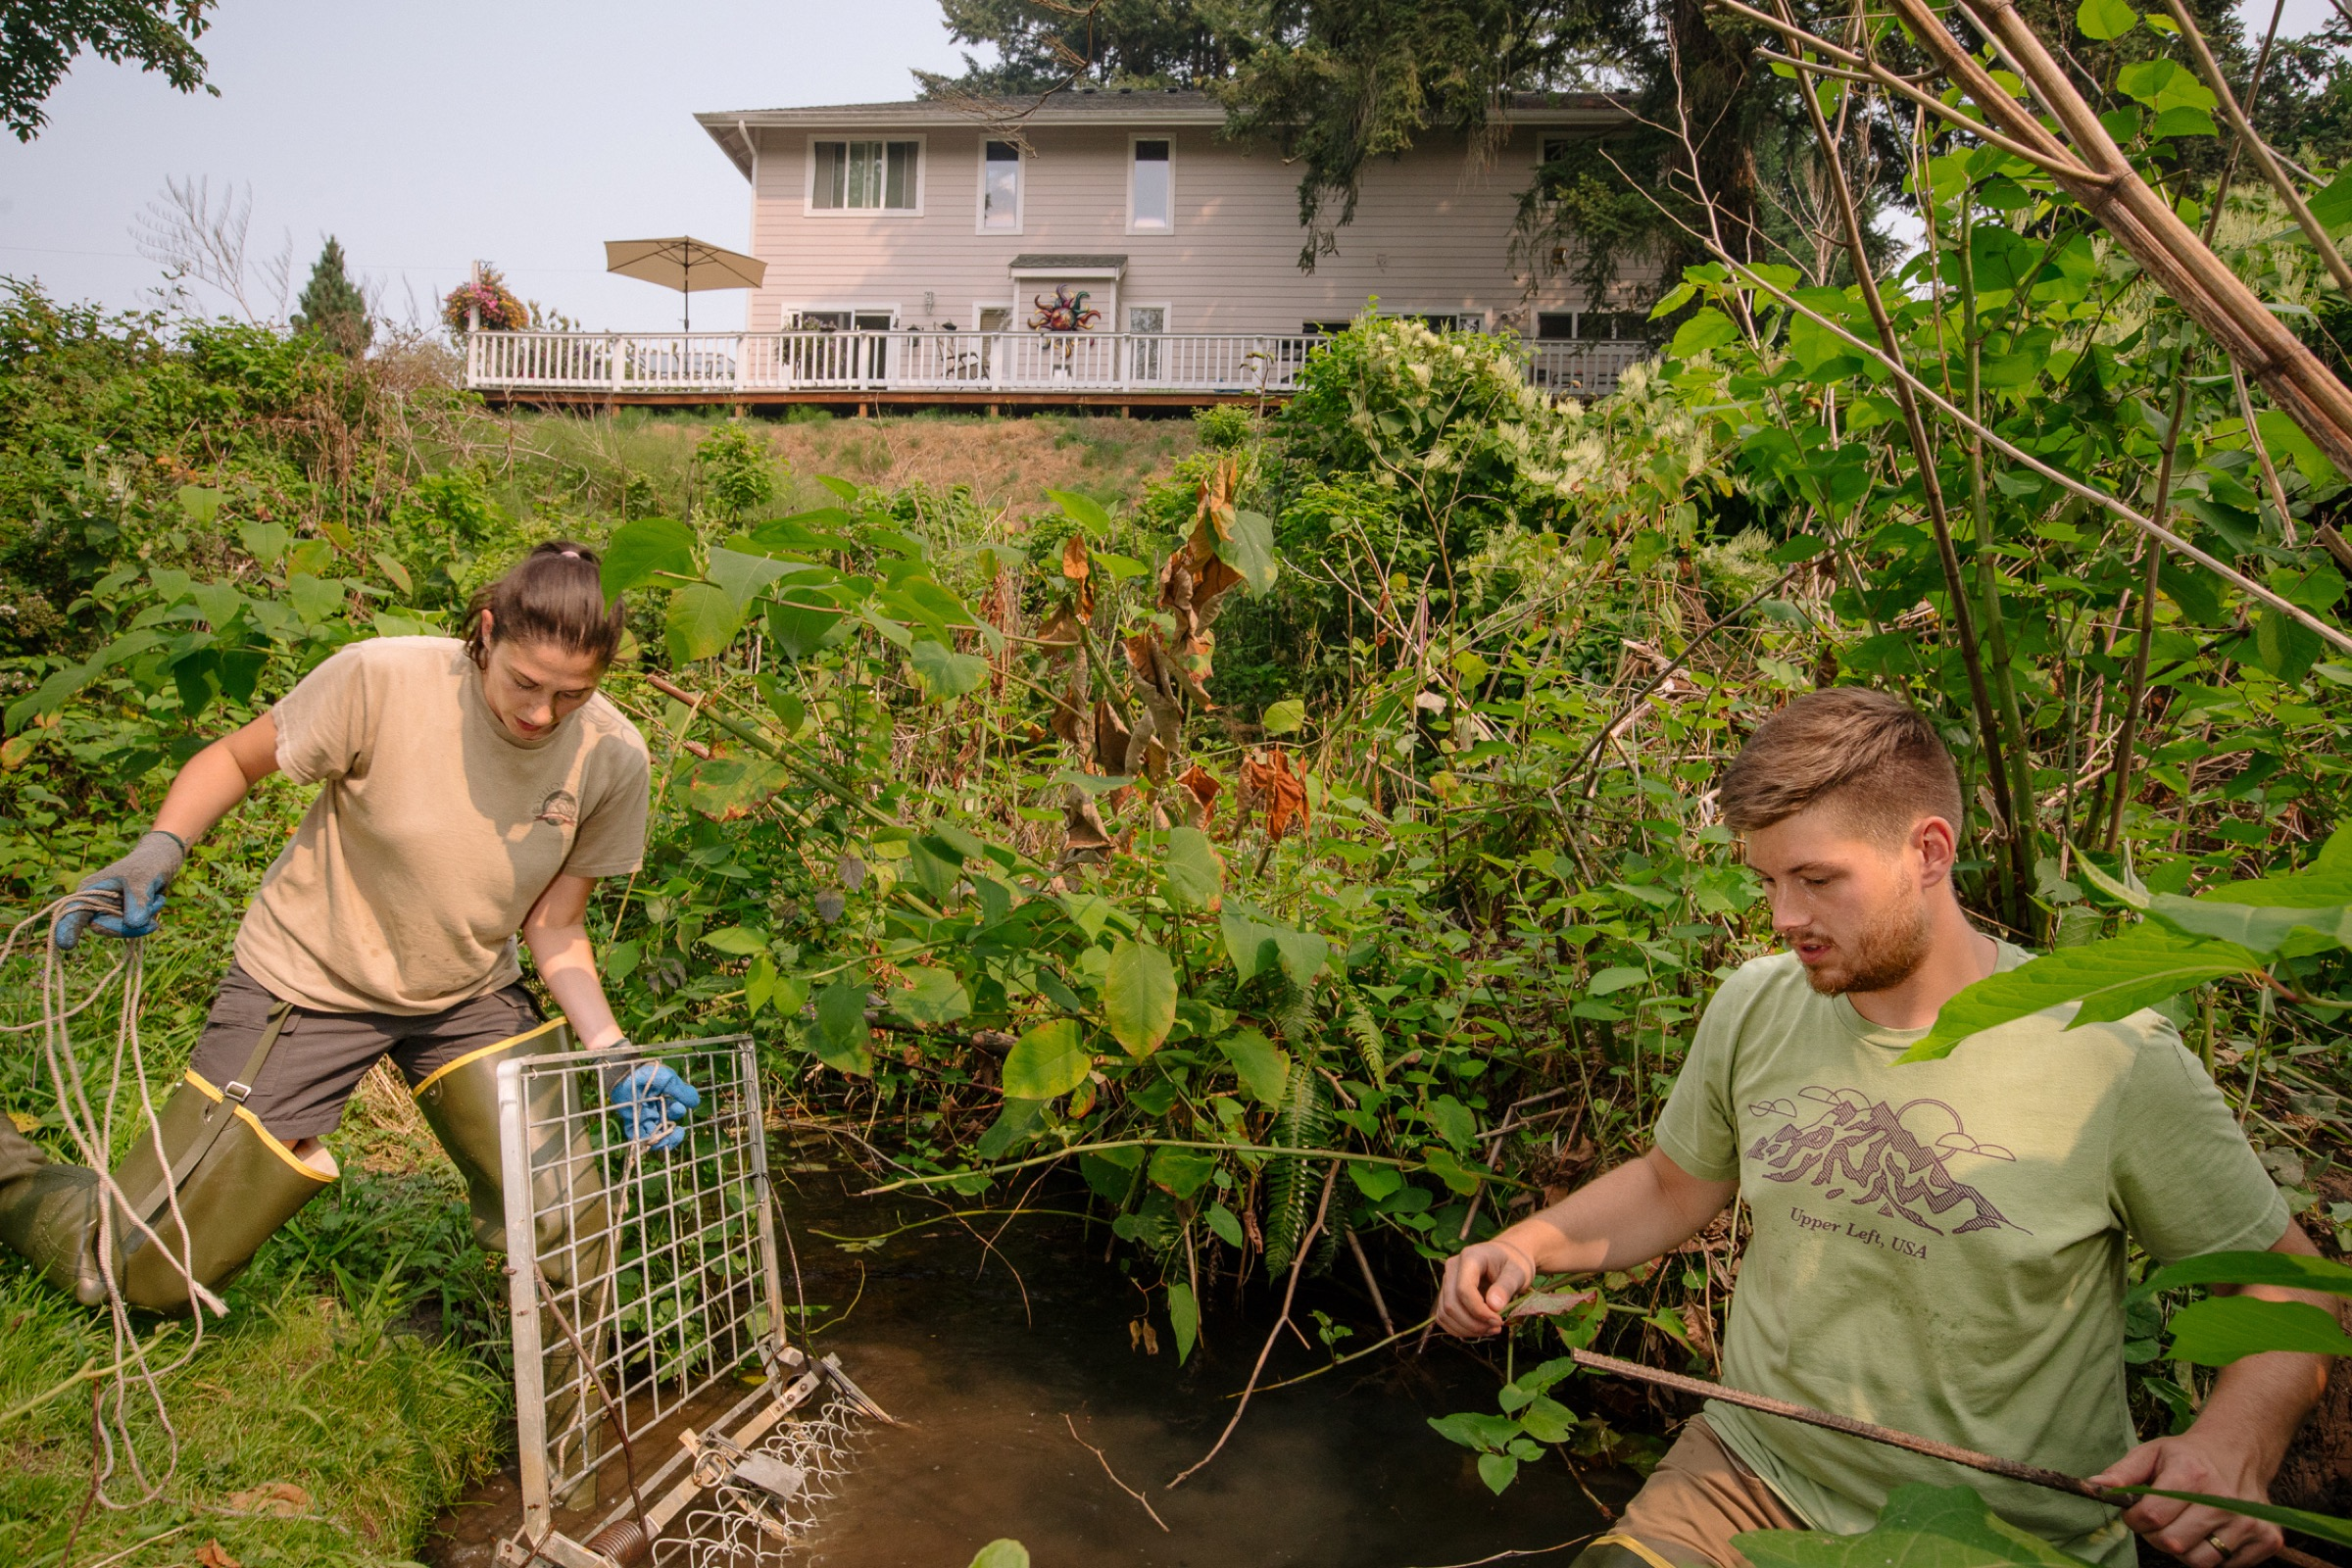 Tulalip Tribe biologists Molly Alves and David Bailey set a beaver trap along a creek in a North Seattle suburb.